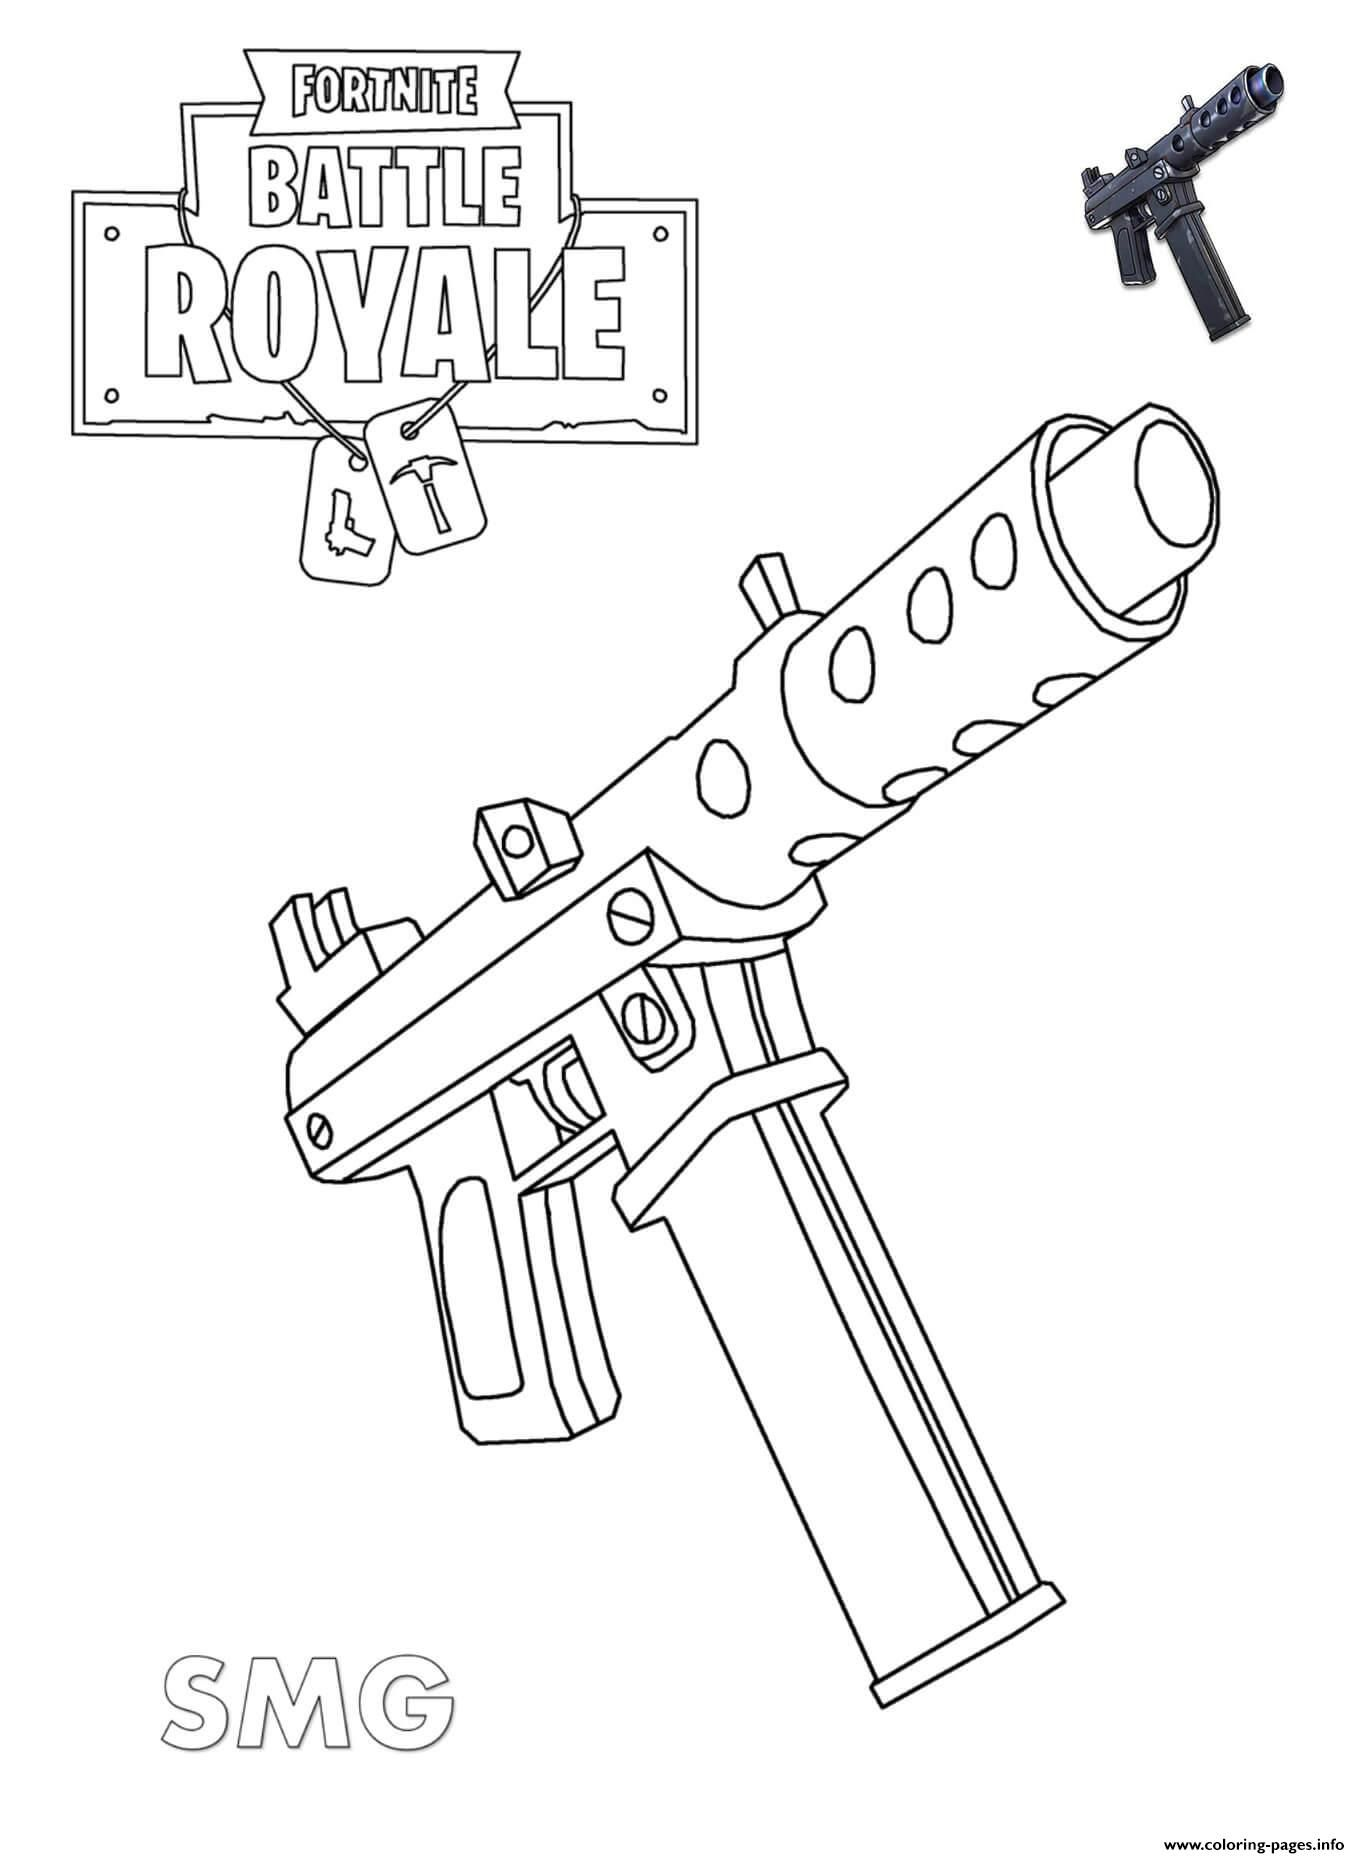 Print Machine Pistol Fortnite Coloring Pages With Images